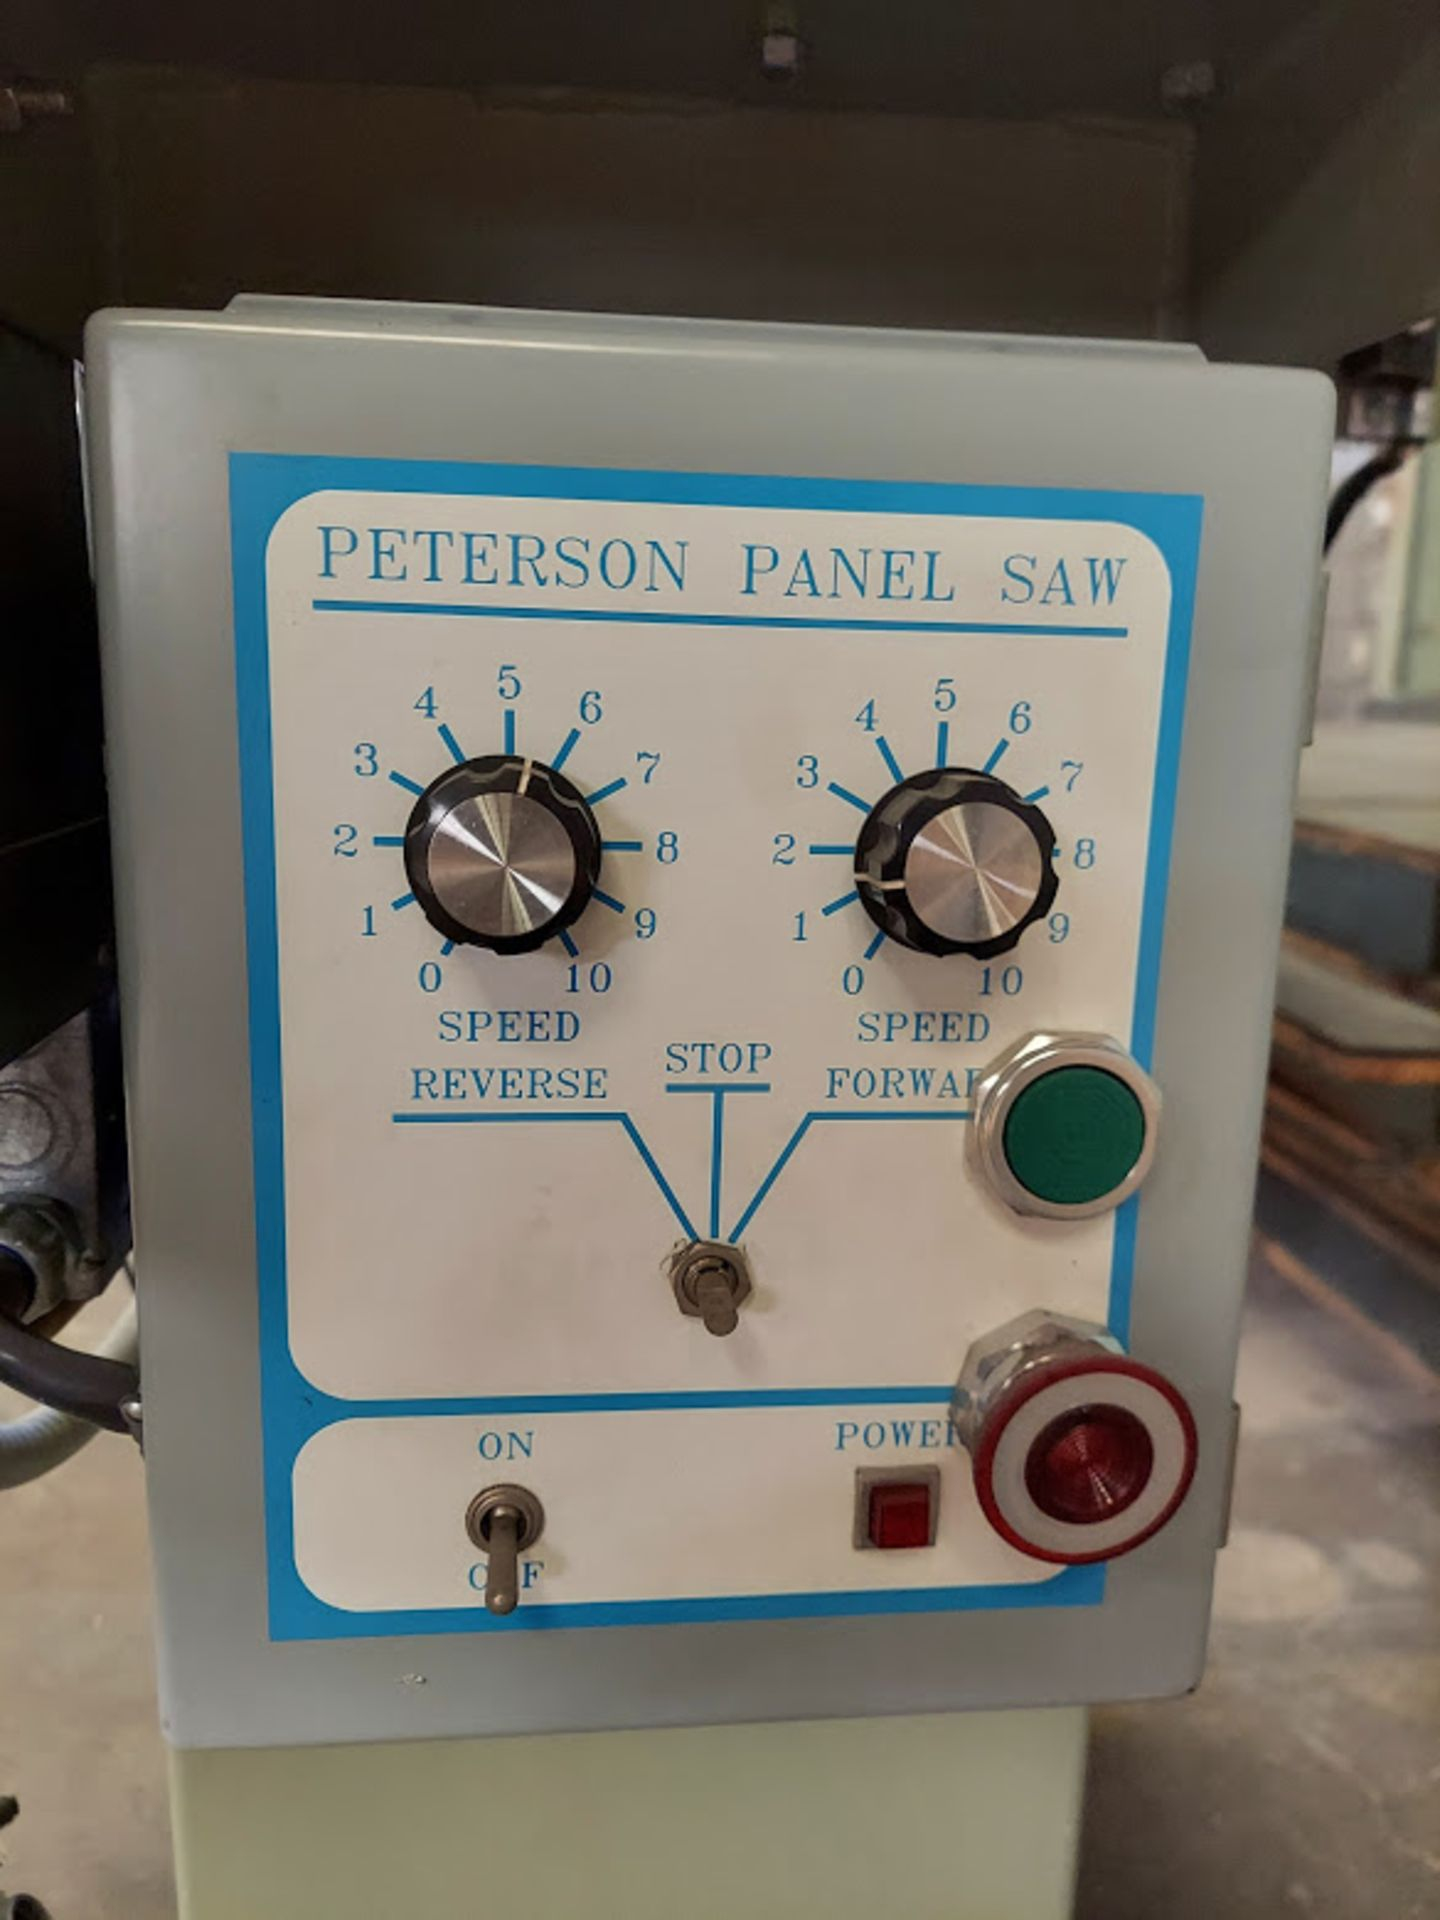 """Peterson 12"""" Panel Saw, 3 HP, 230/460 Volt 3 Phase, Pallet of Infeed and Outfeed Tables, Pneumatic - Image 5 of 9"""